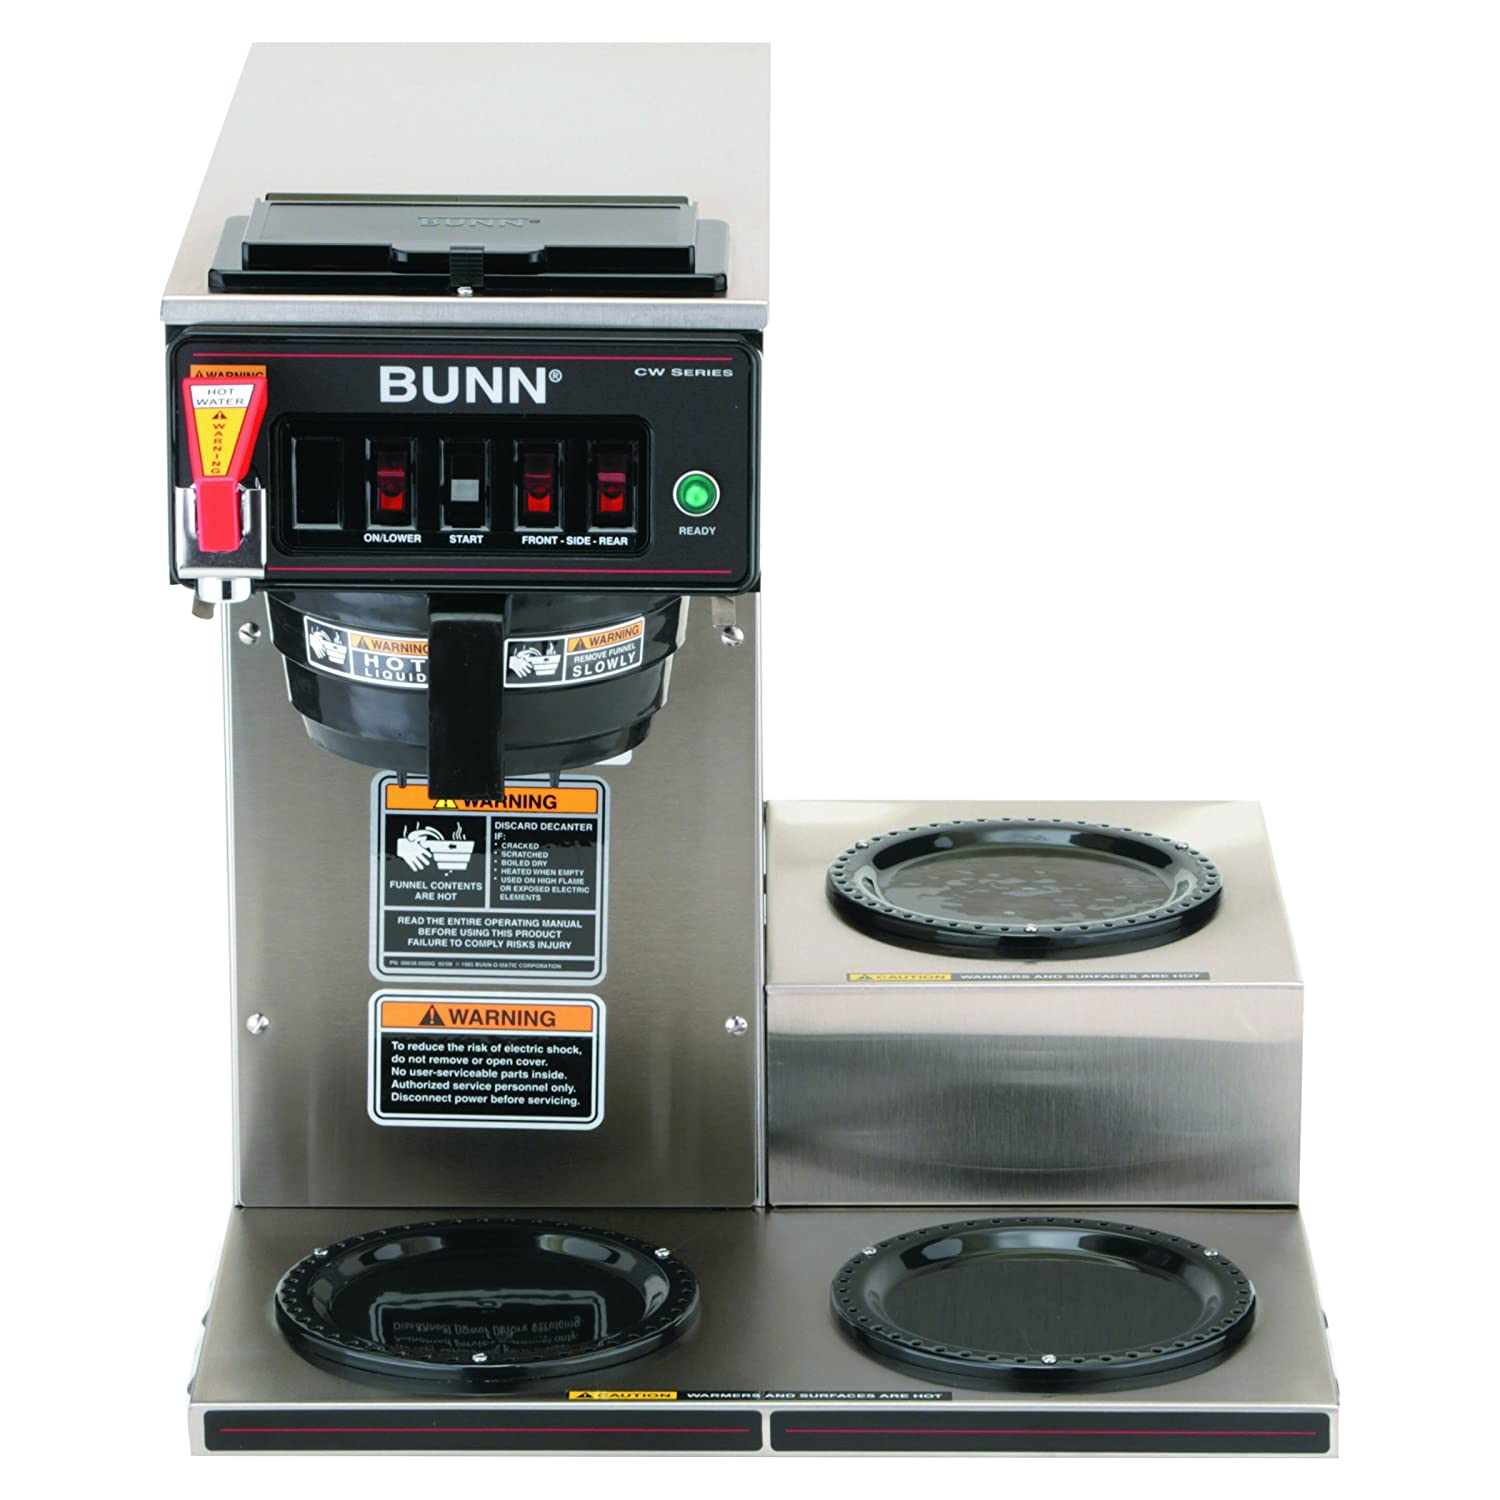 Bunn 129500212 Cwtf15 3 Automatic Commercial Coffee Cw Series Wire Diagram Brewer With Lower Warmers 120v Drip Coffeemakers Kitchen Dining